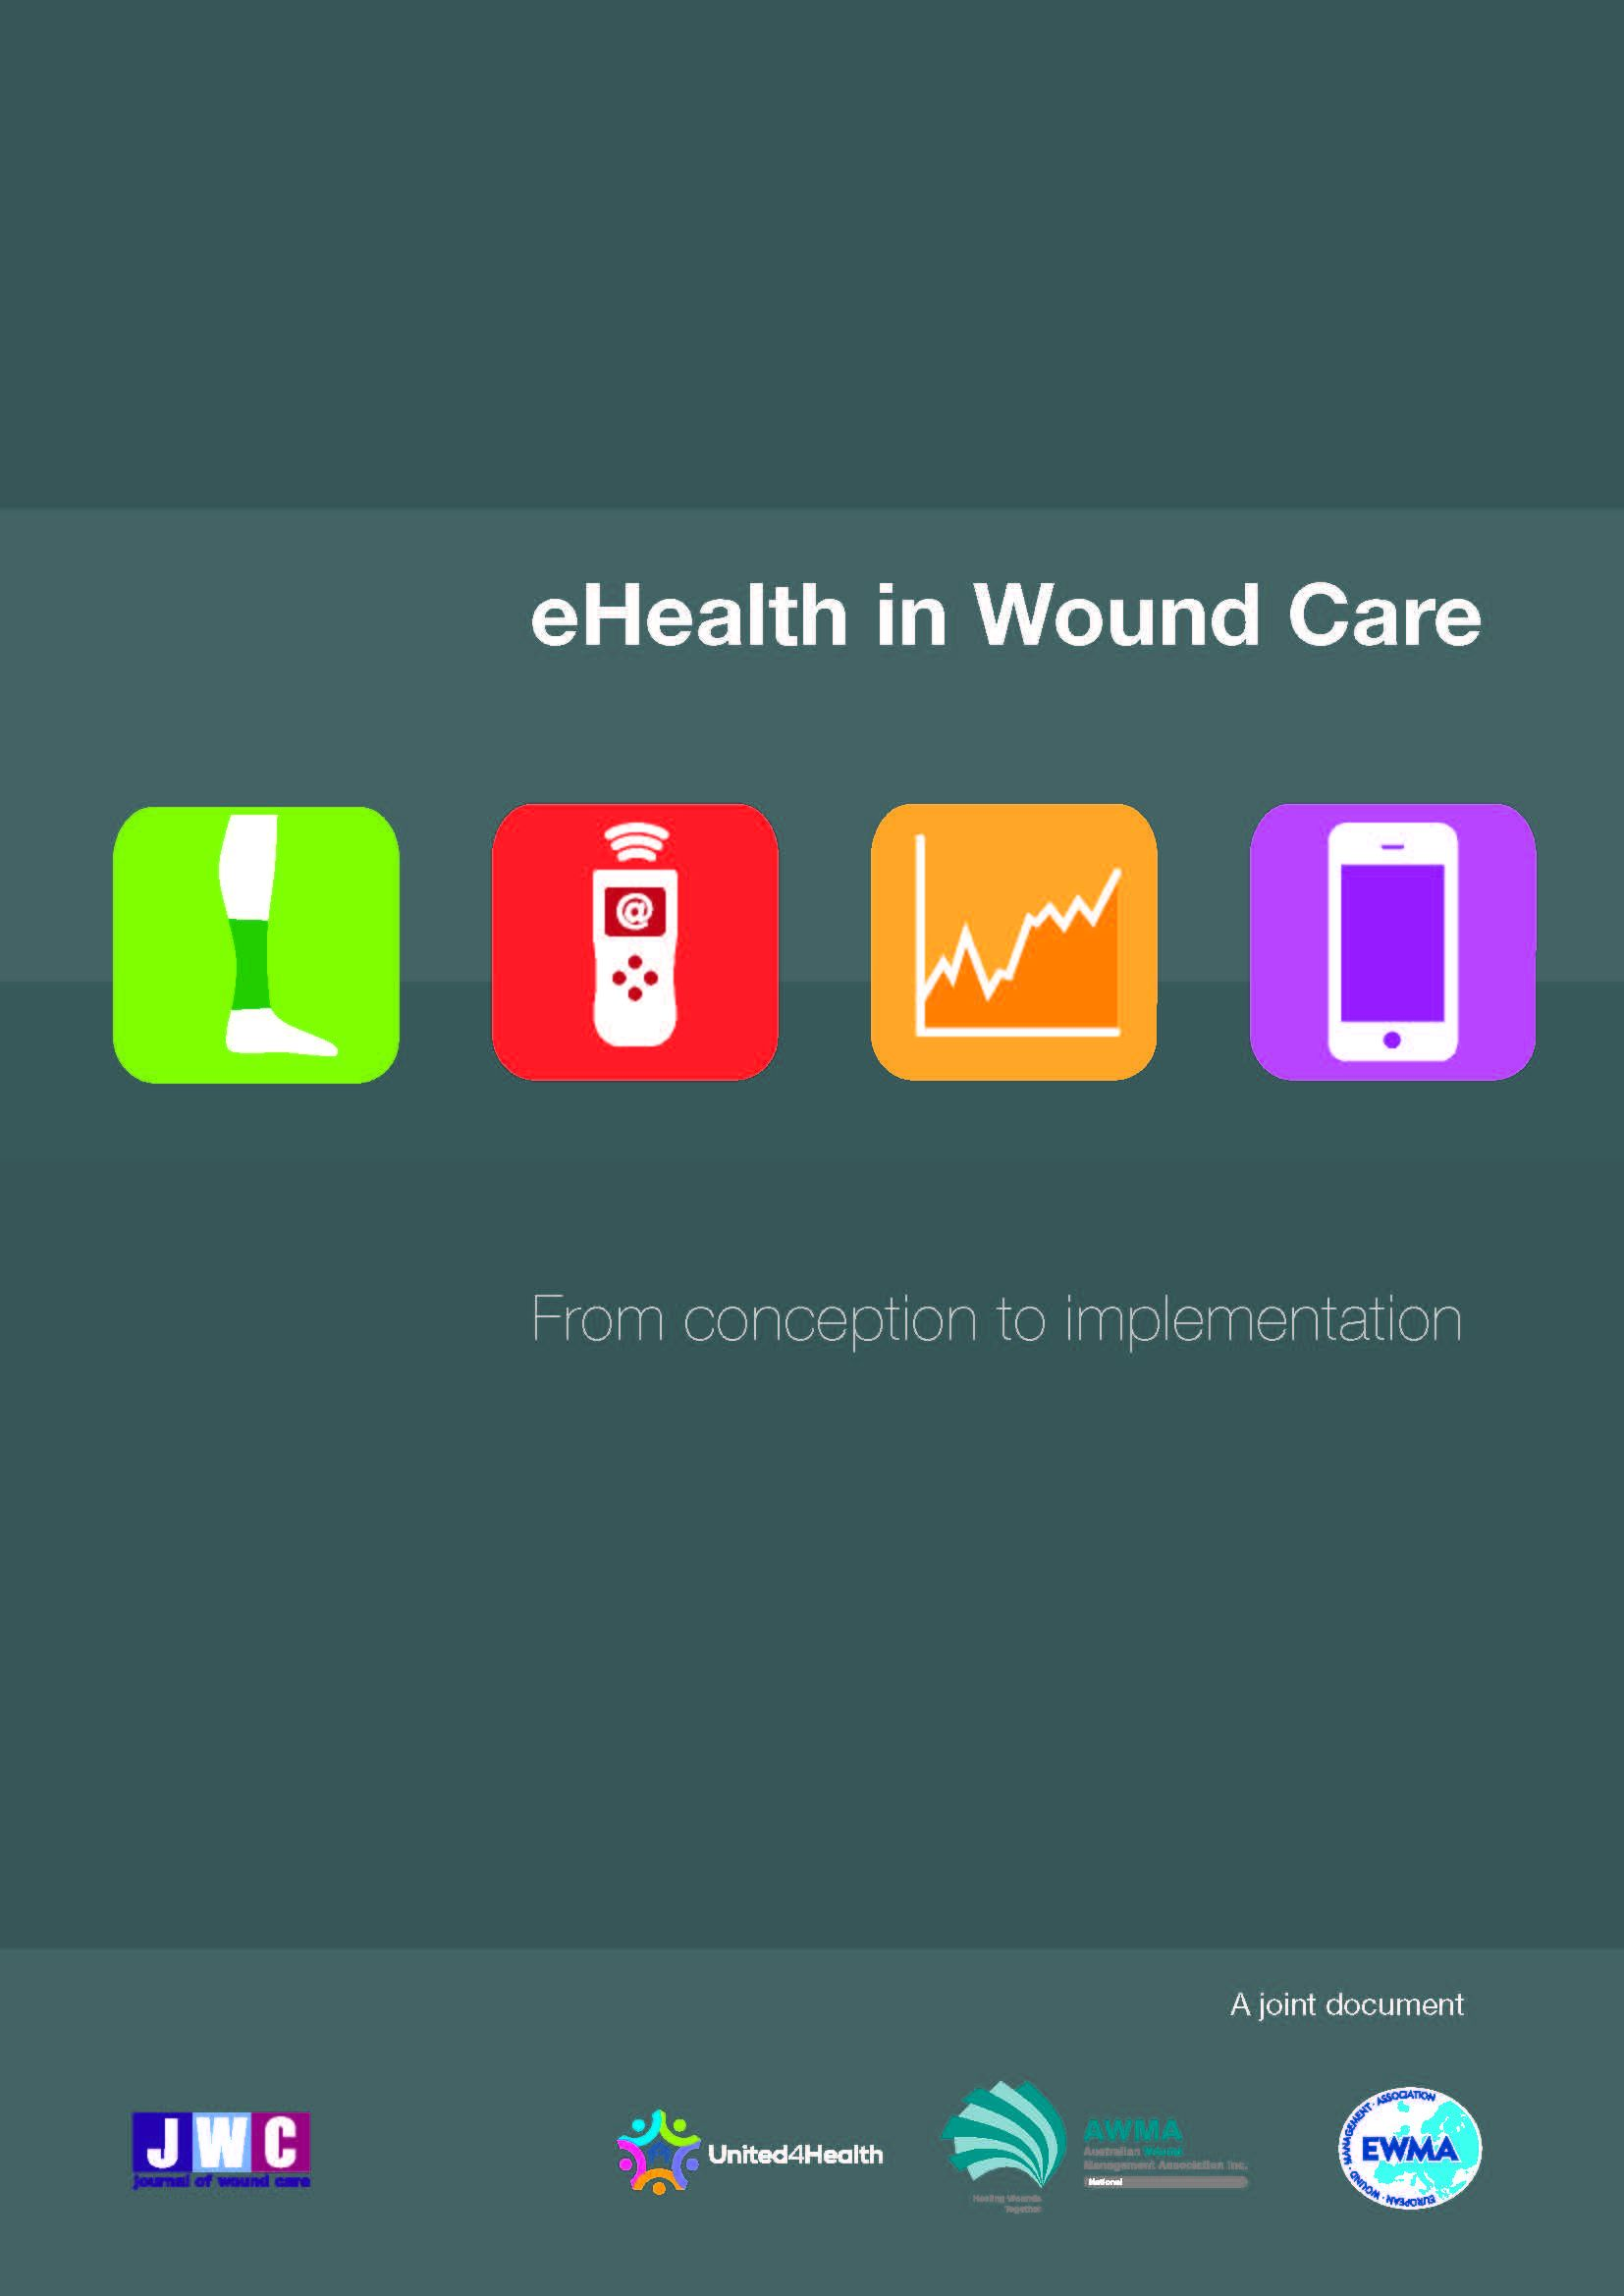 EWMA - eHealth in Wound Care